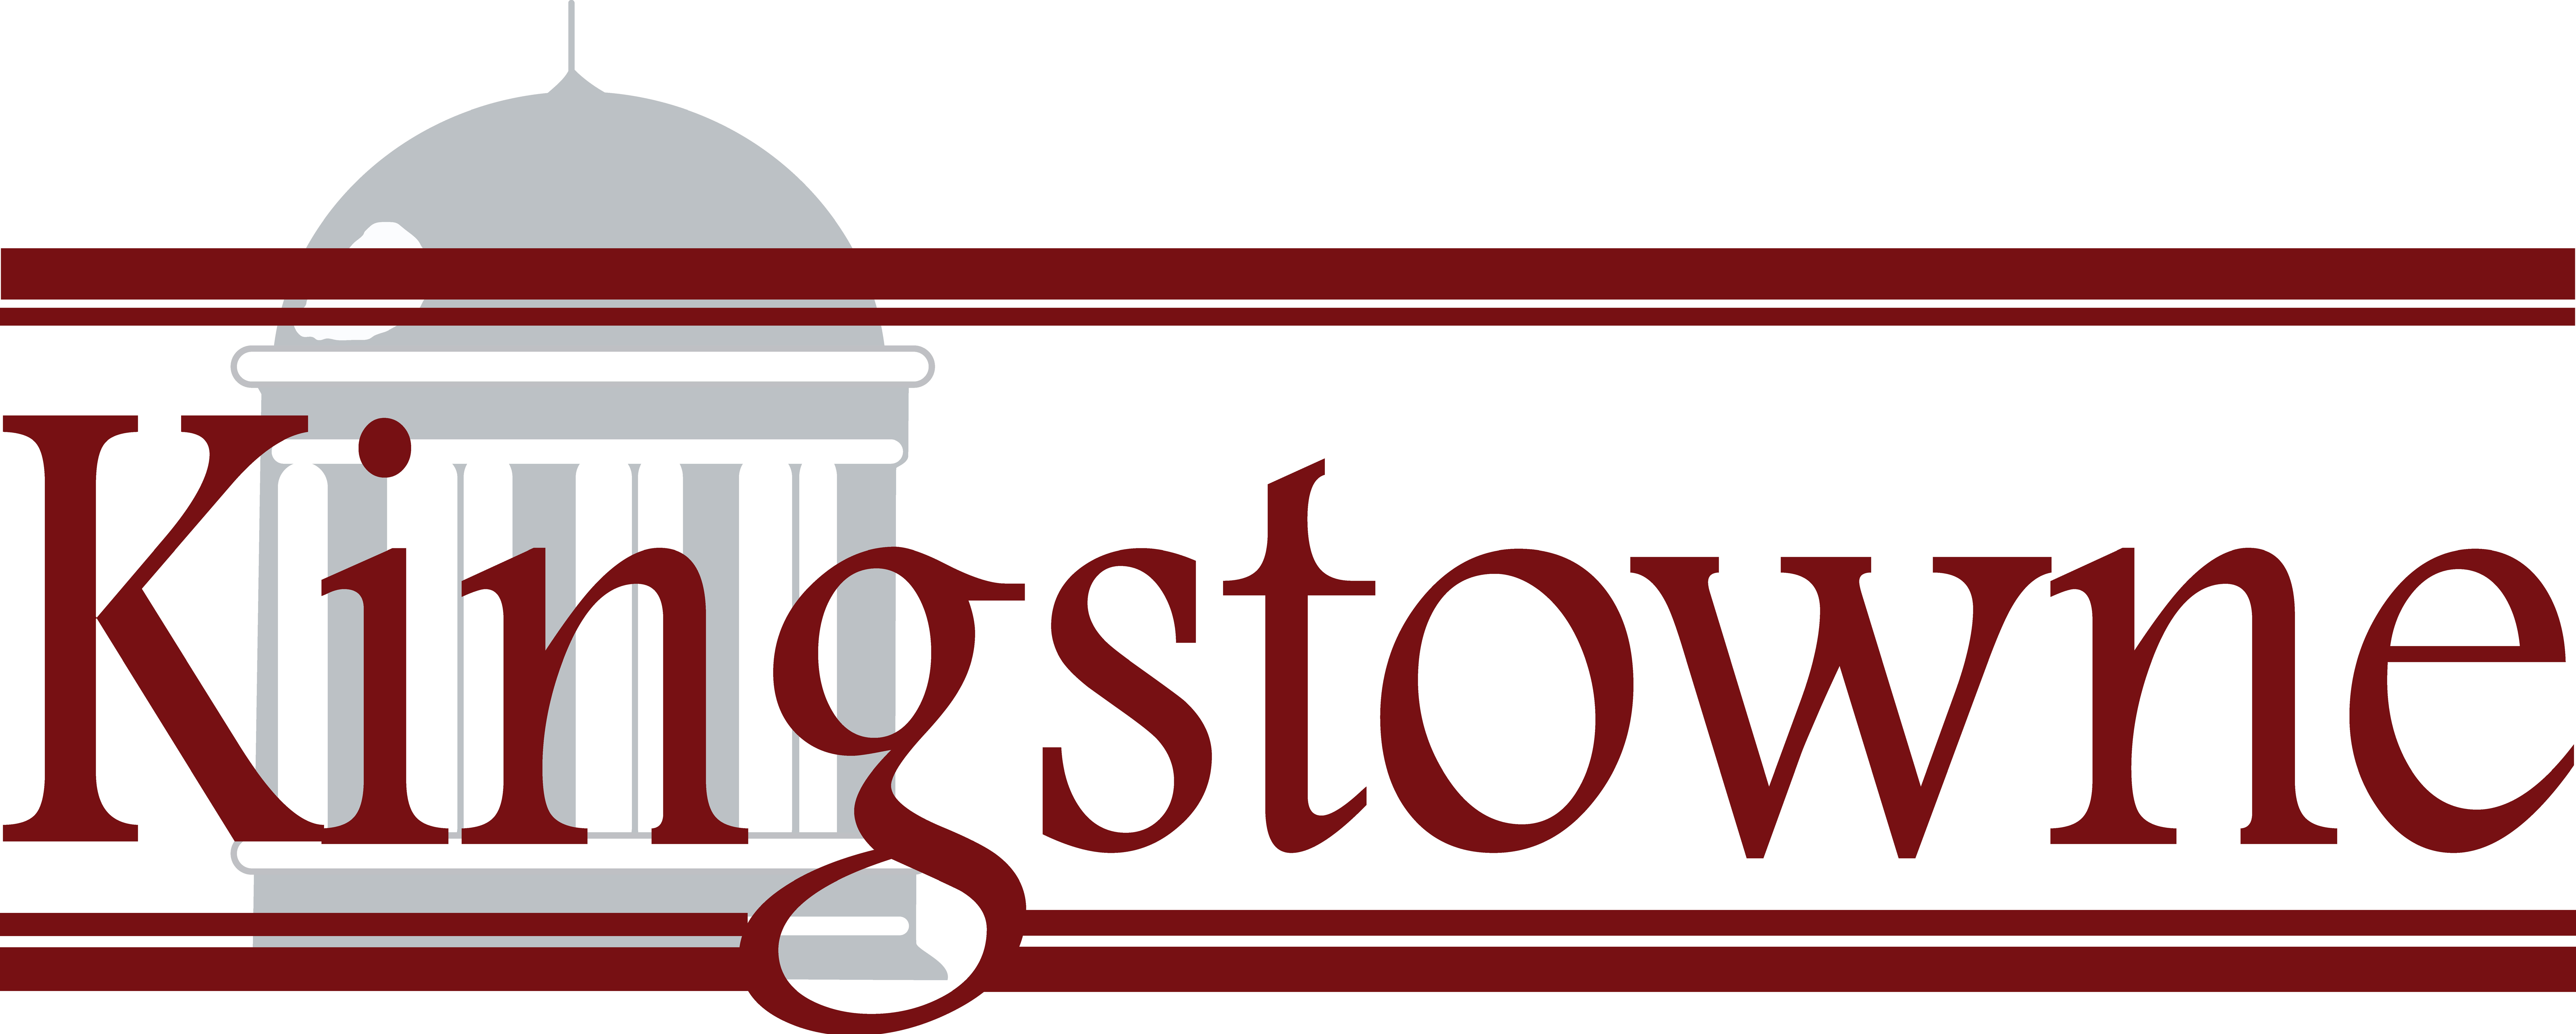 Kingstowne Residential Owners Corporation